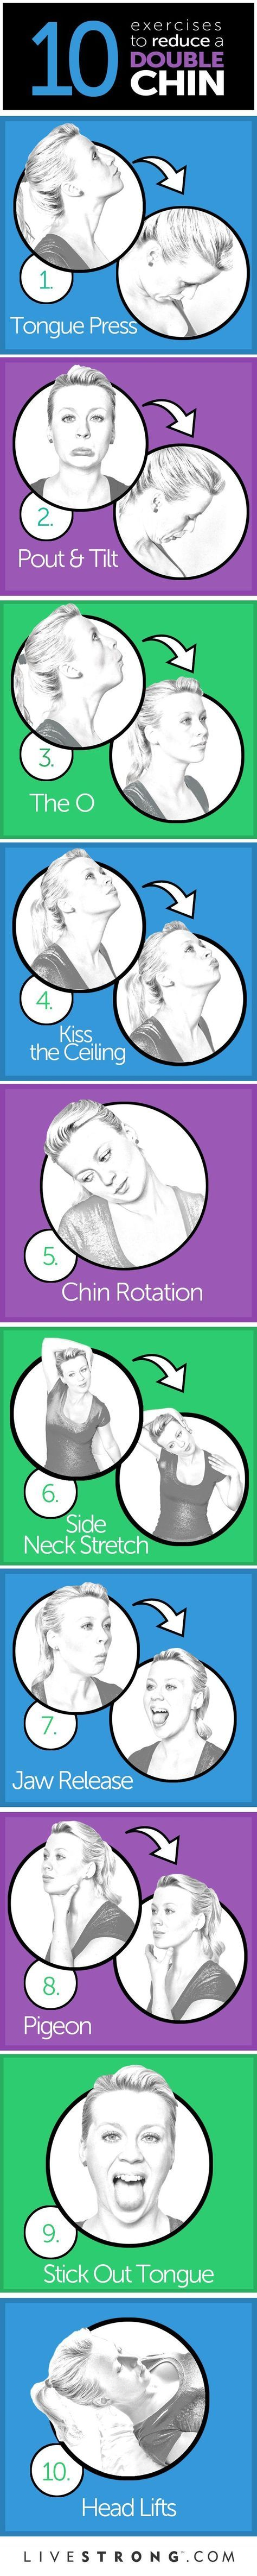 Health And Fitness: The 10 Best Exercises to Reduce a Double Chin